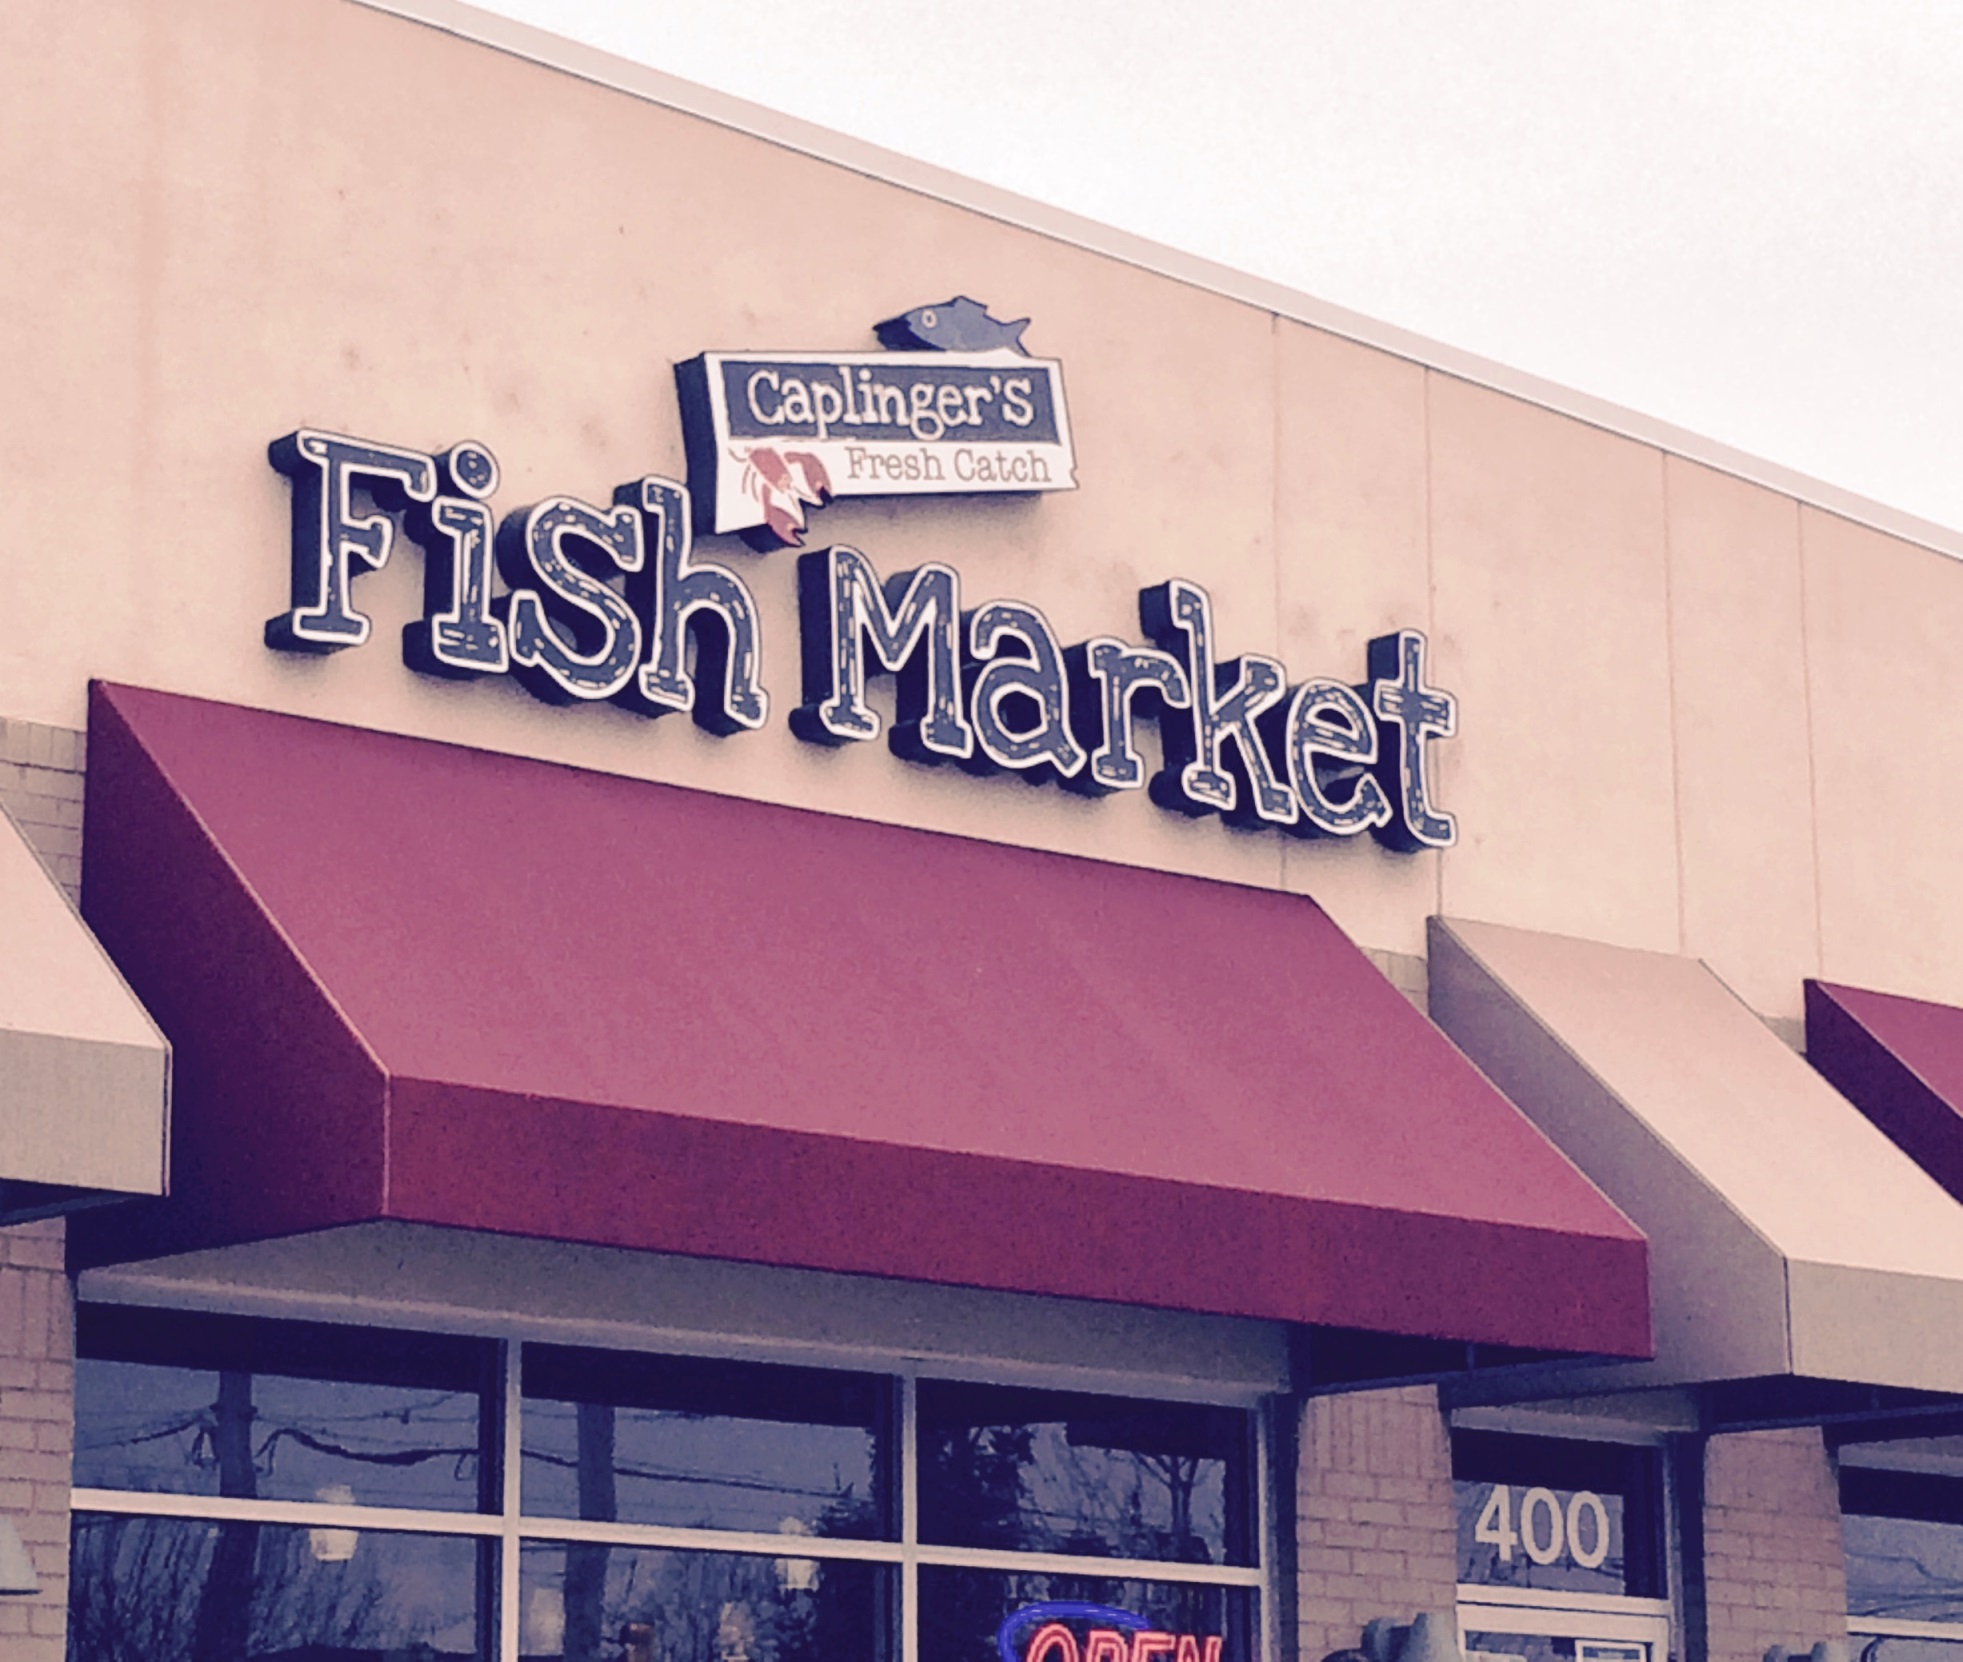 Caplinger's Fresh Catch Seafood Market